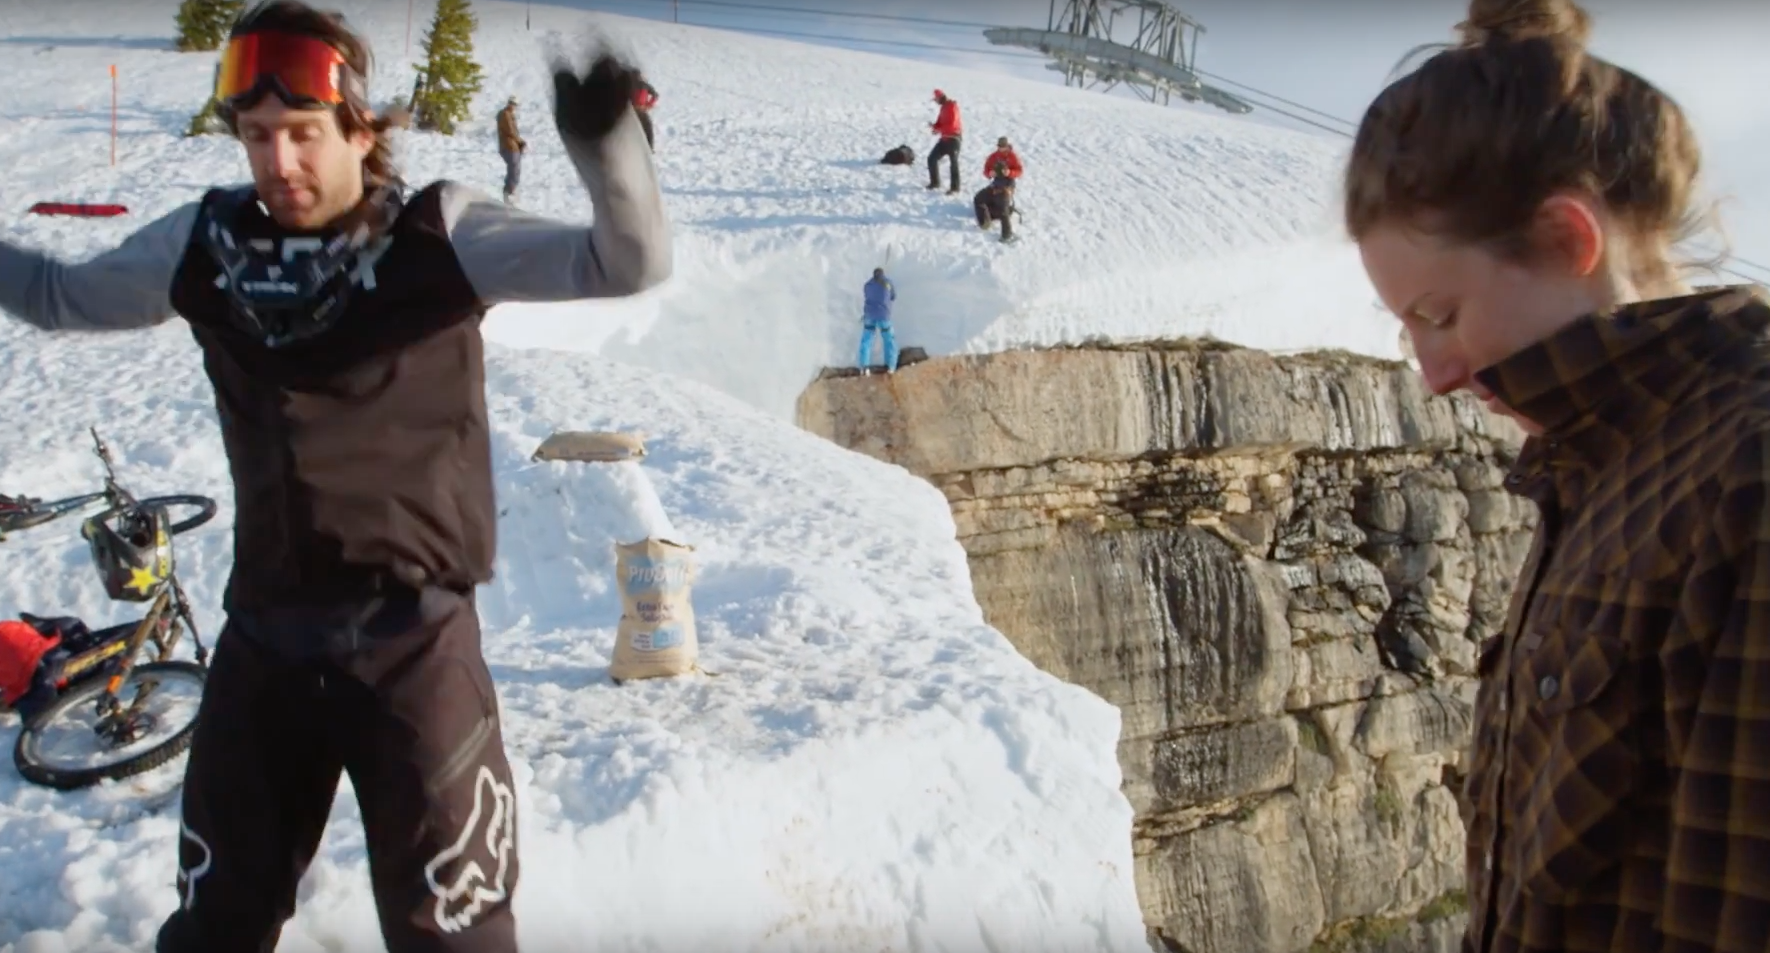 Who's gonna send it bigger? Cam McCaul or Casey Brown?